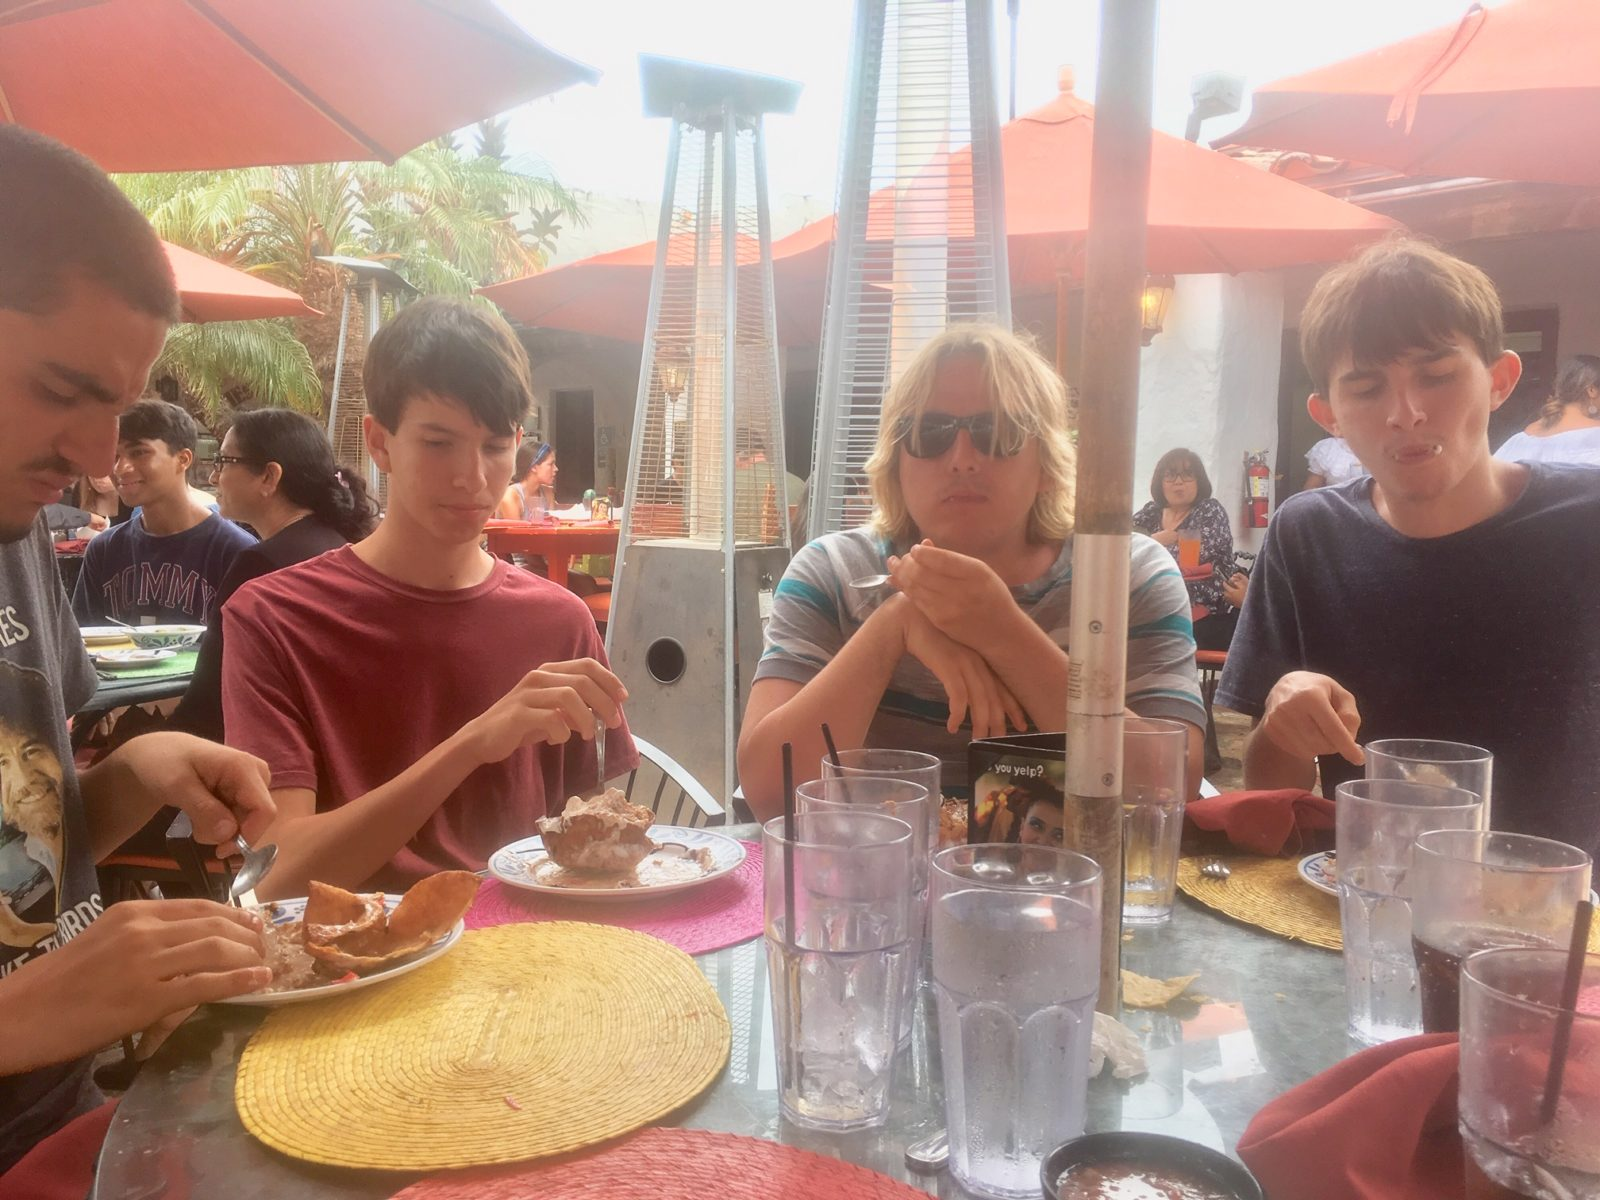 Adam,Blake,Kyle,and Aiden in Old Town San Diego